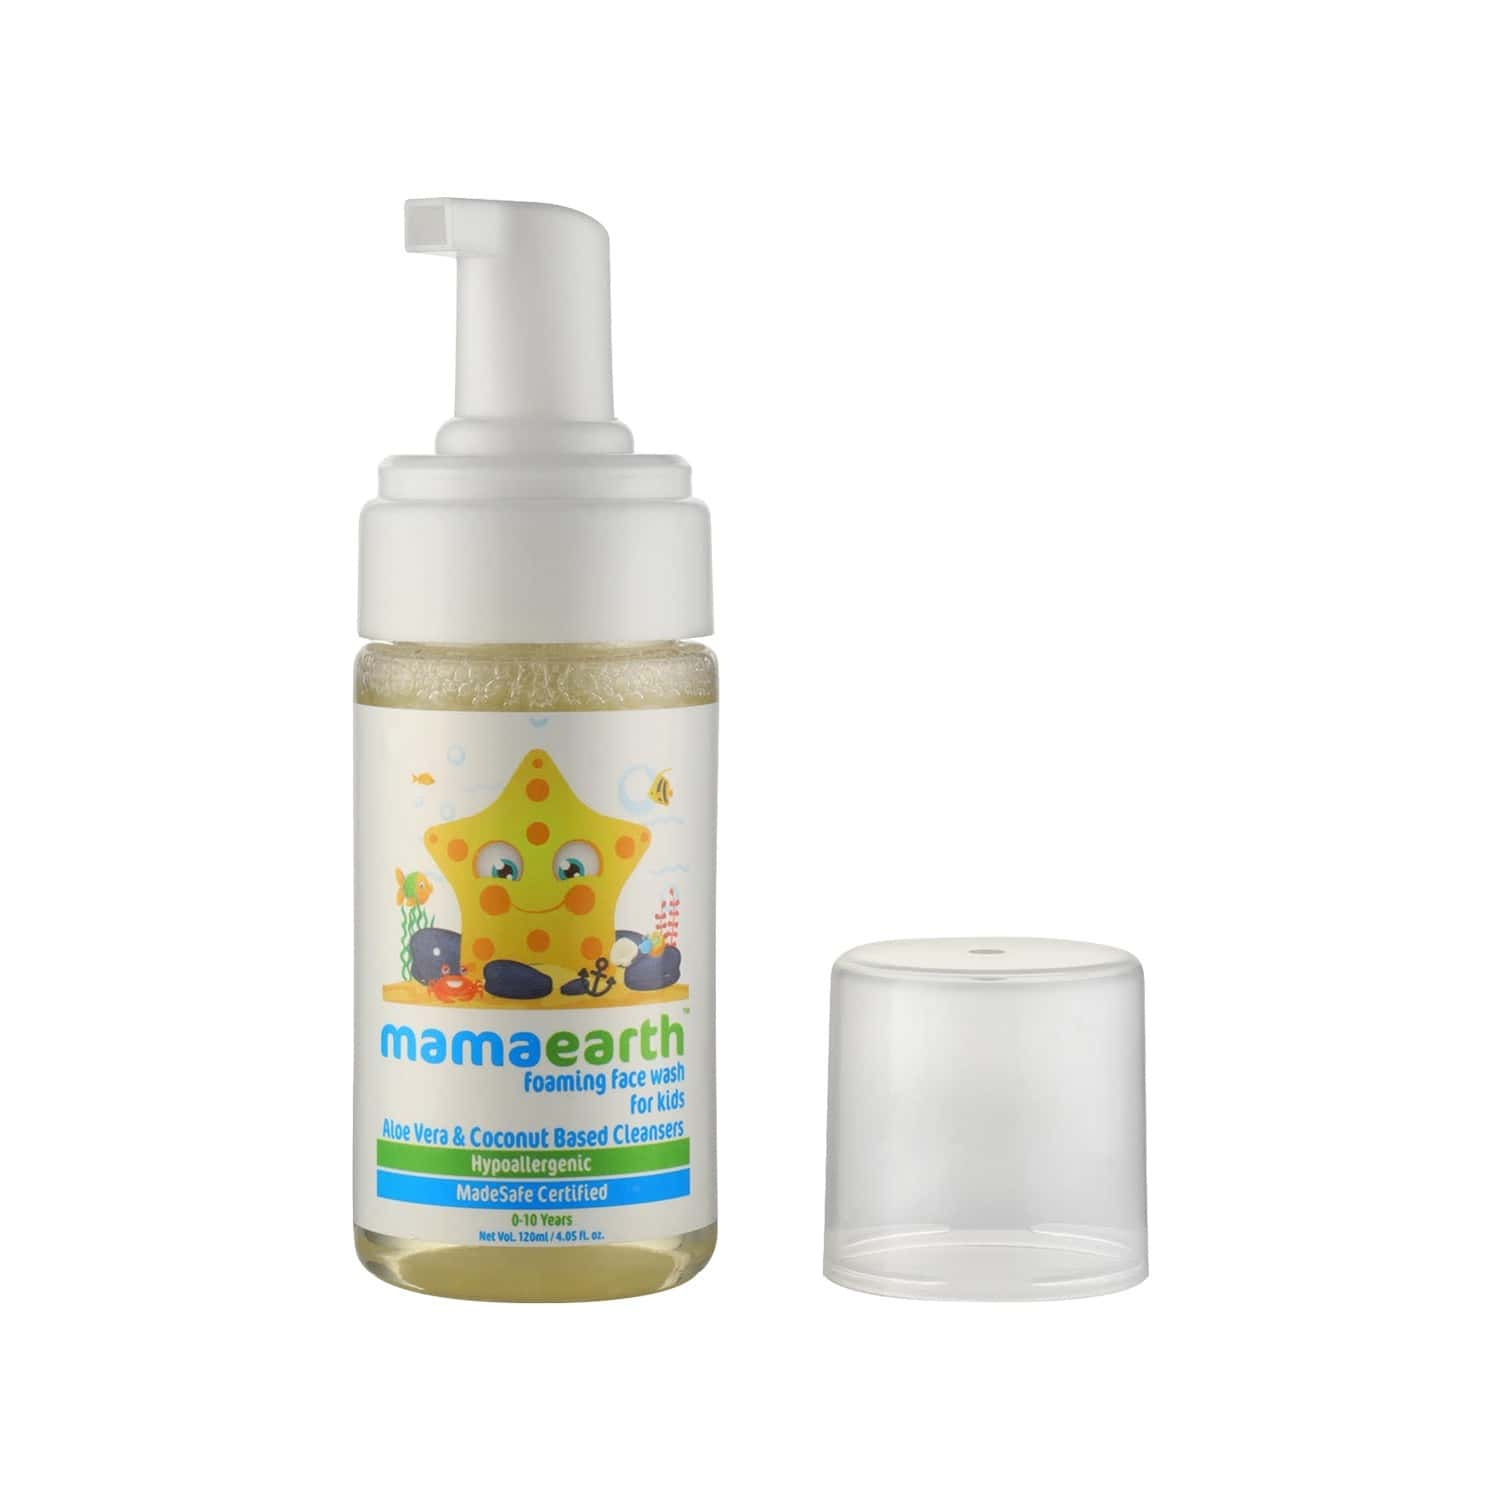 Mamaearth Foaming Baby Face Wash For Kids With Aloe Vera And Coconut Based Cleansers - 120ml